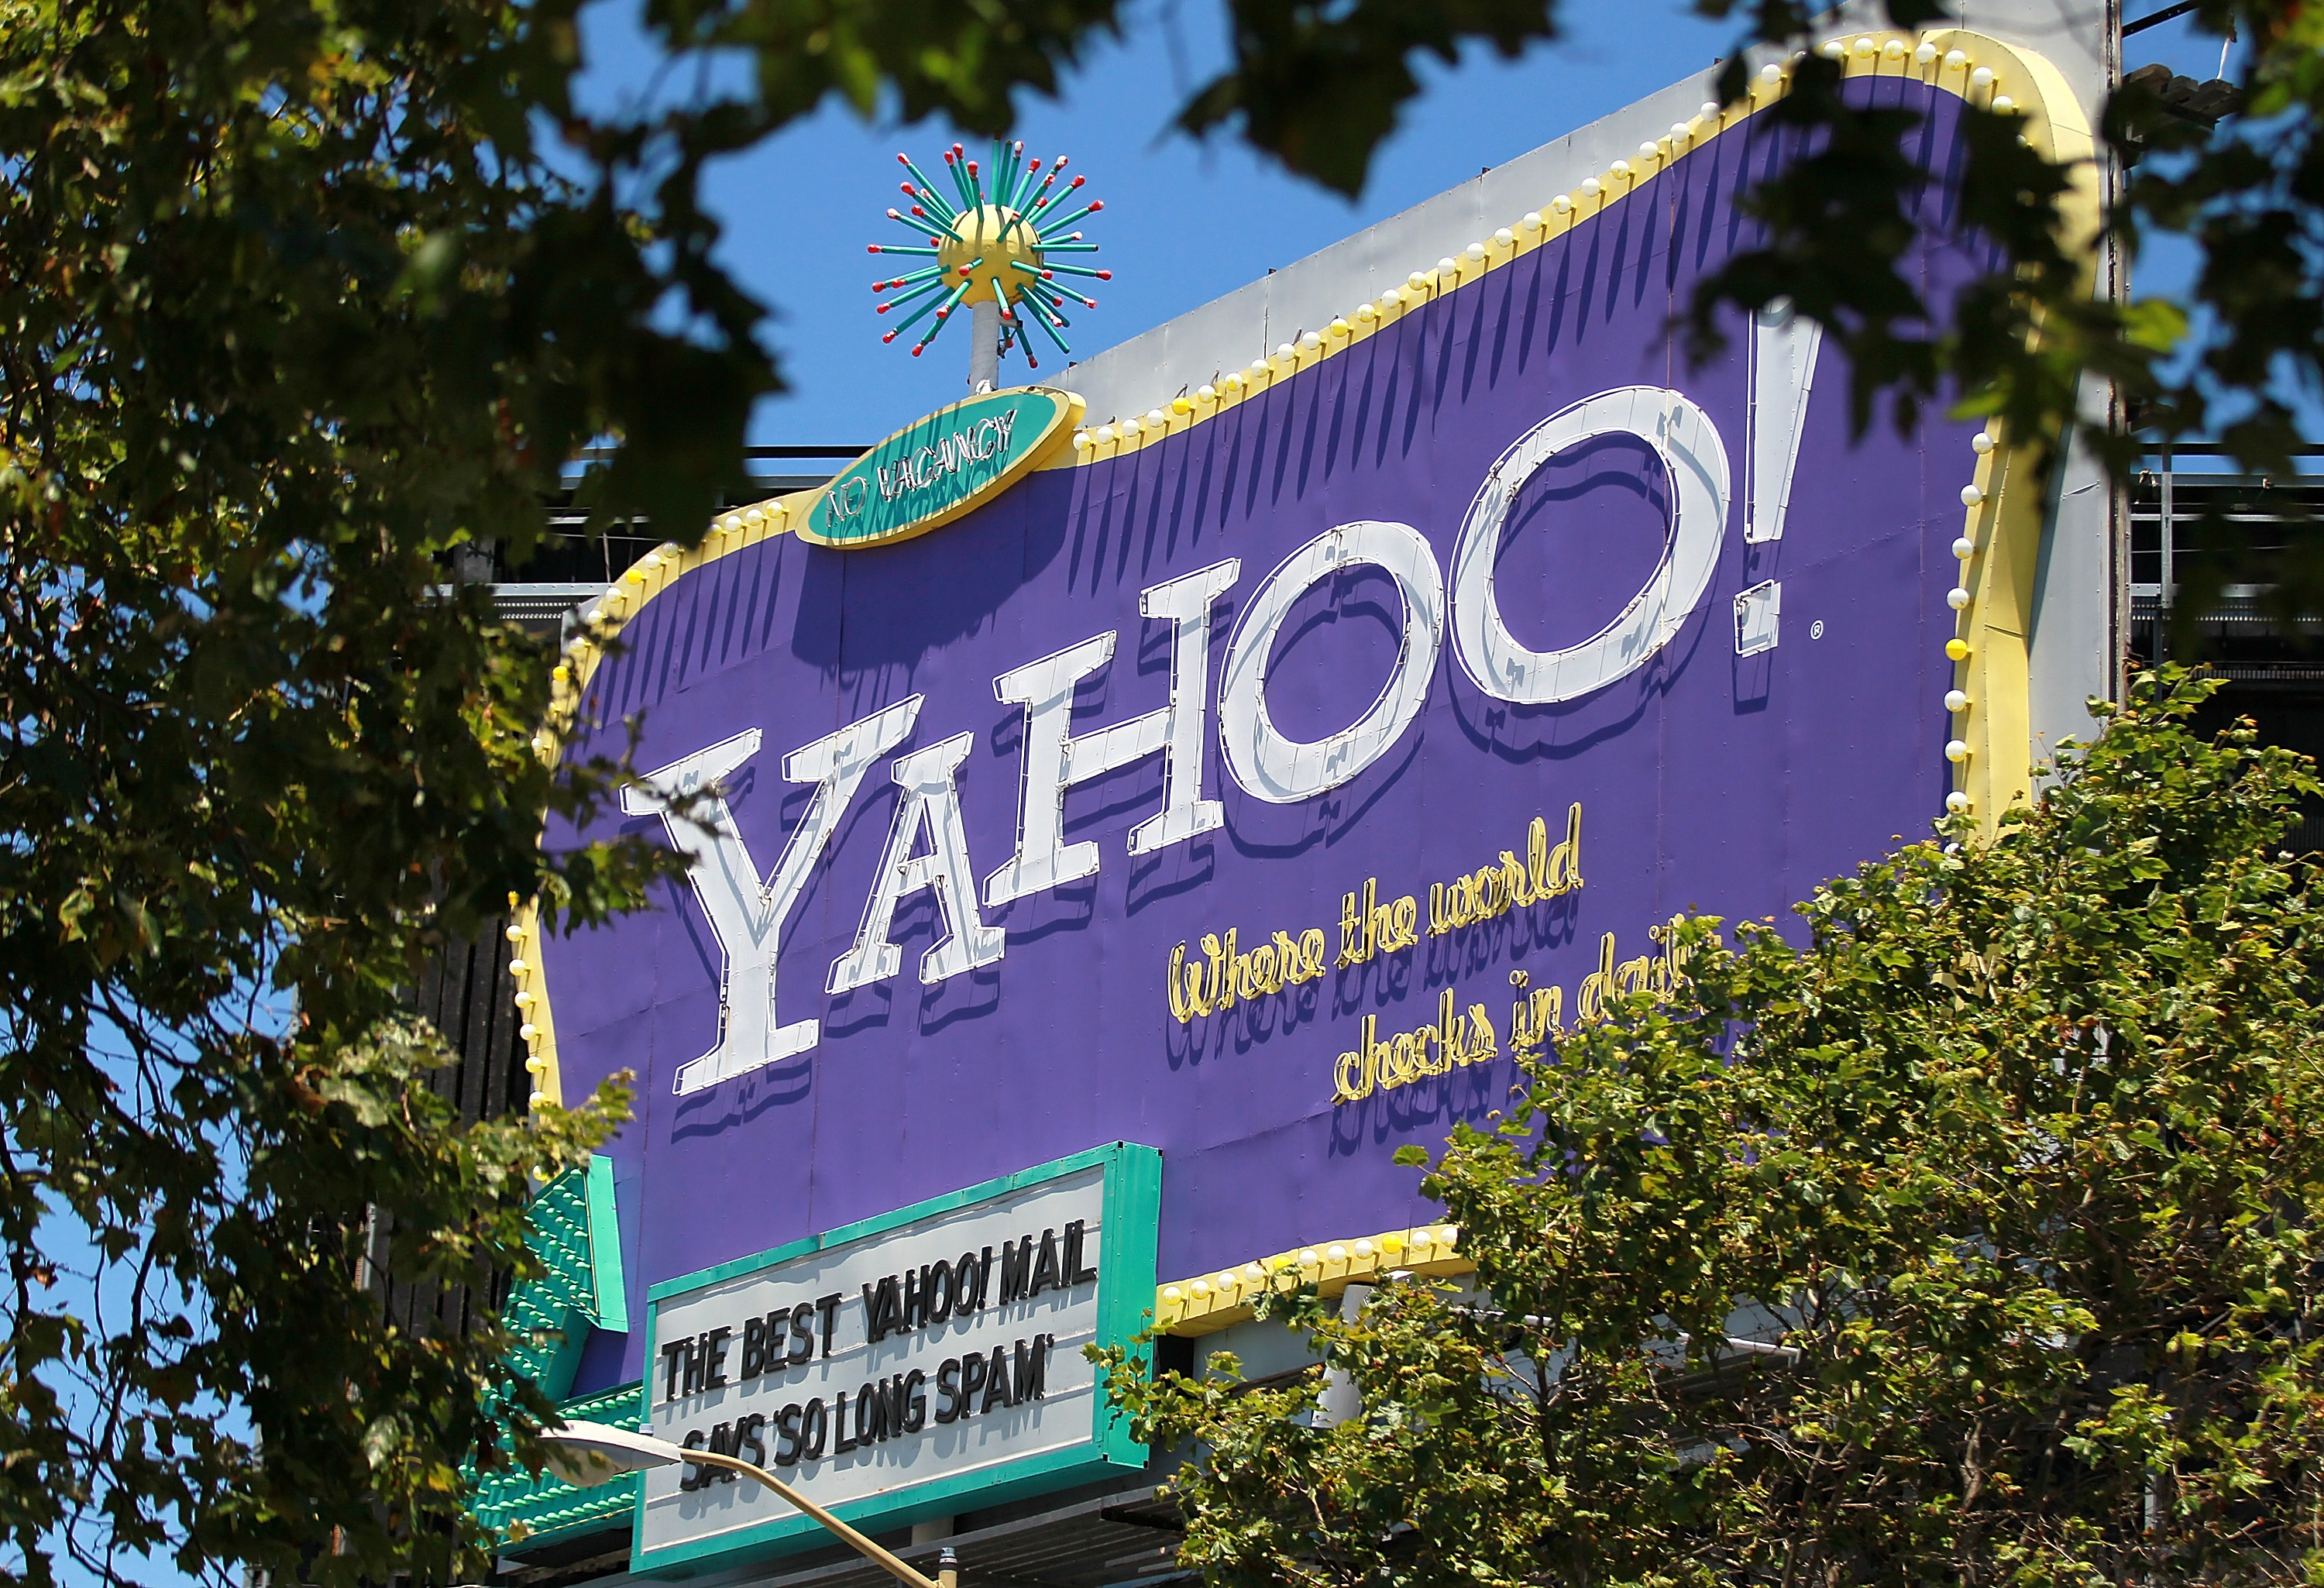 A  Yahoo! billboard is visible through trees on July 19, 2011 in San Francisco, California.